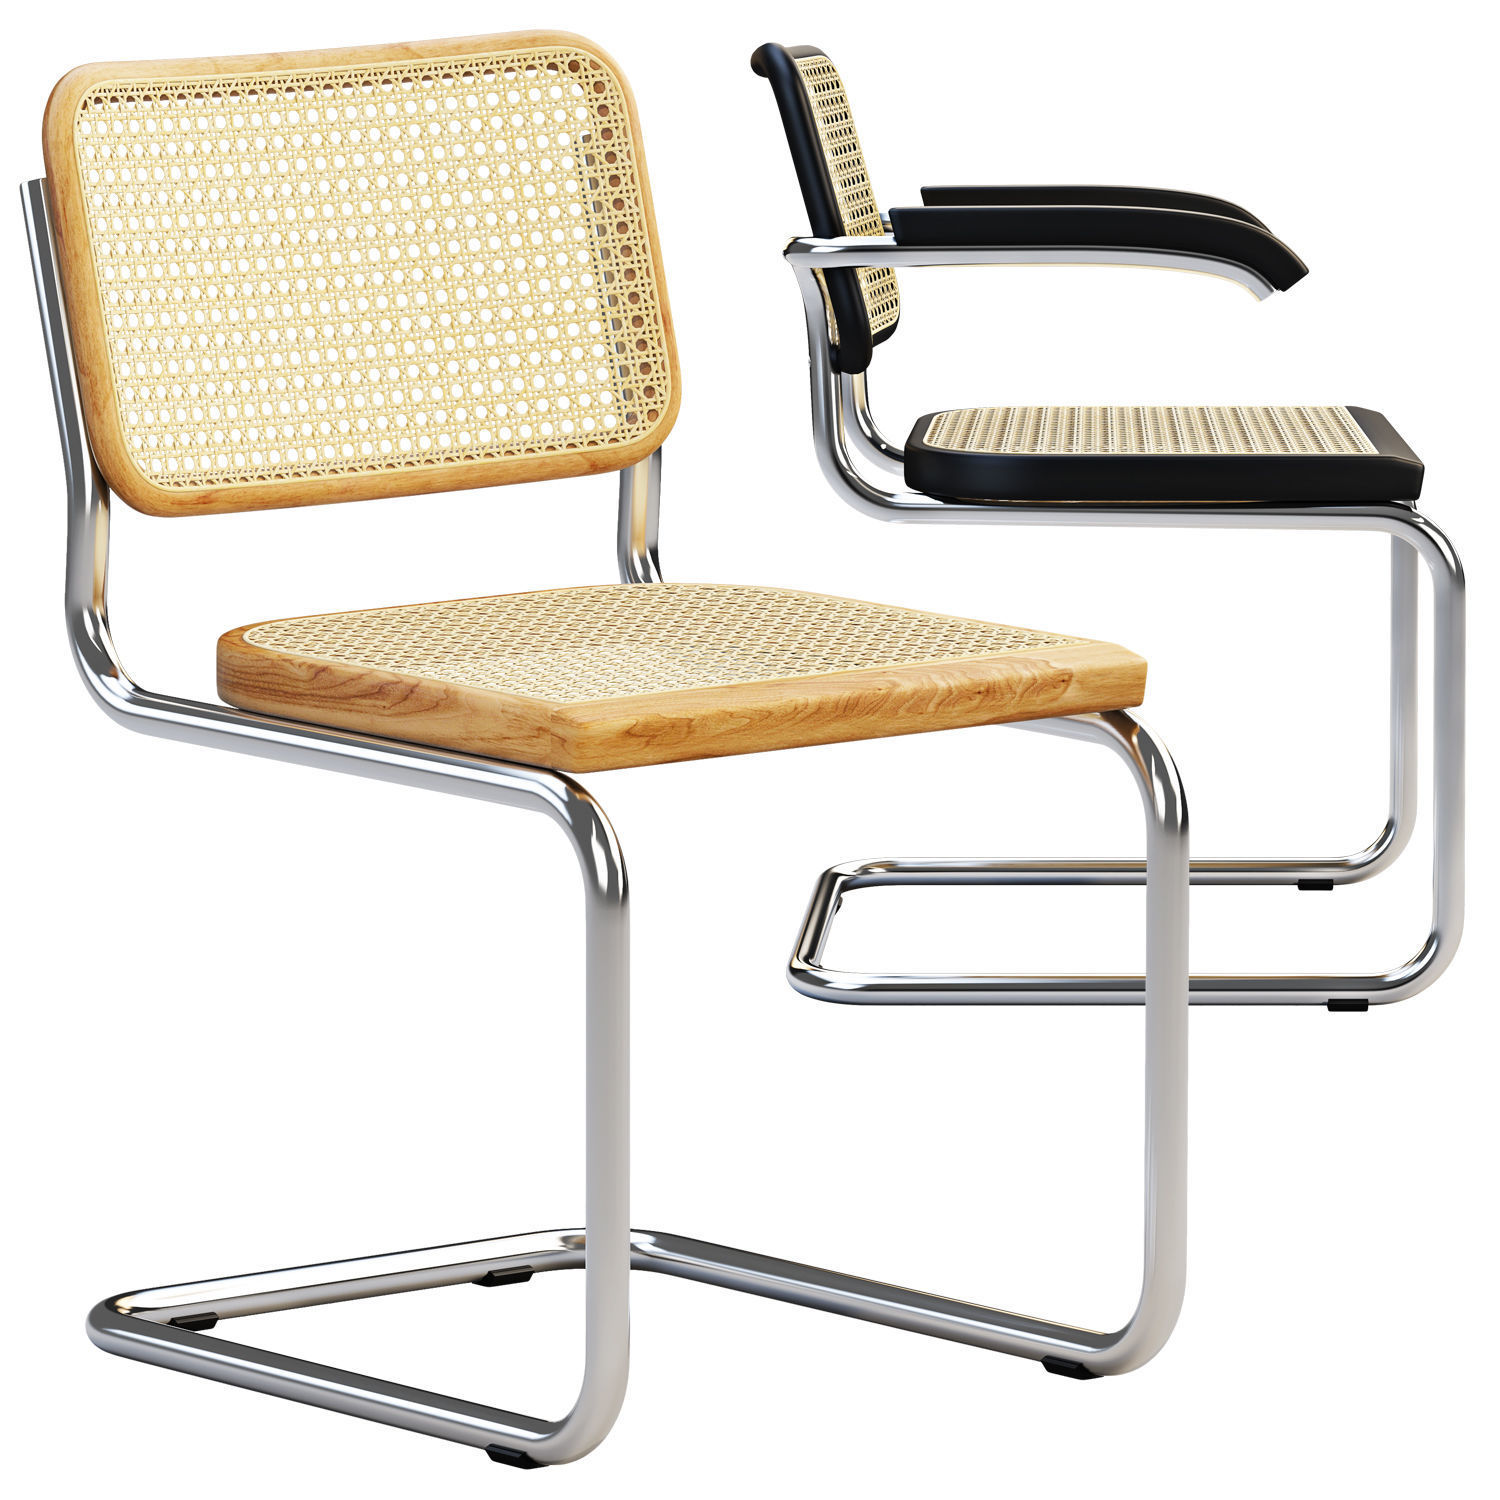 Cesca Chairs B 32 by Marcel Breuer 2 options